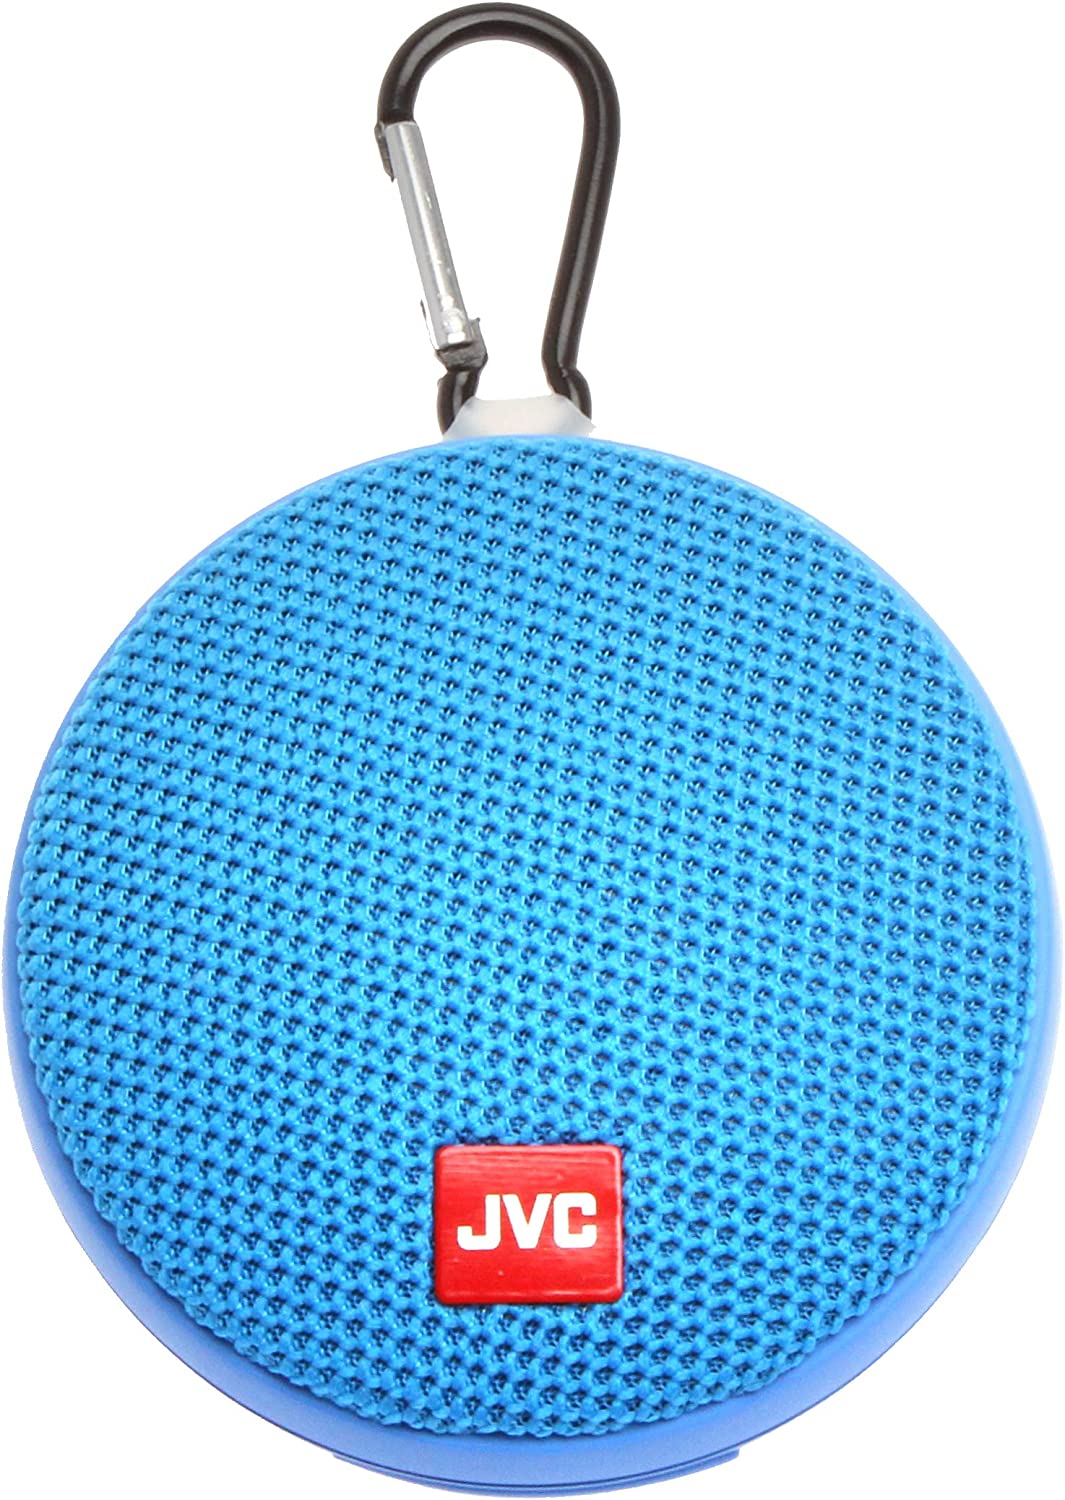 JVC Portable Wireless Speaker with Surround Sound, Bluetooth 5.0, Waterproof IPX4, 7-Hour Battery Life - SPSA2BTA (Blue)